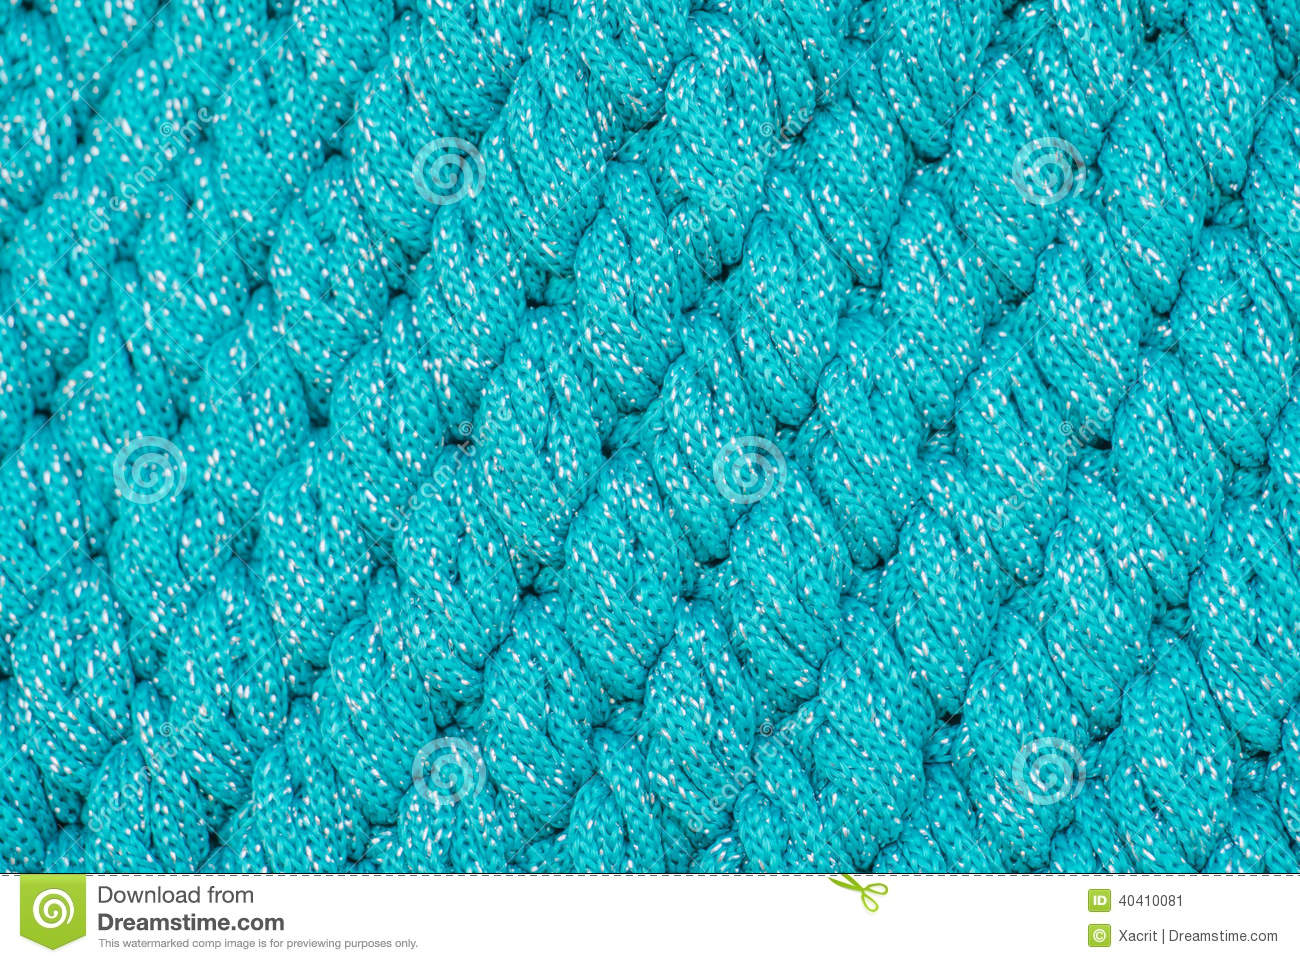 Knitting Stitch Orientation : Closeup Of Green Cable Knitting Stitch Stock Photography CartoonDealer.com ...